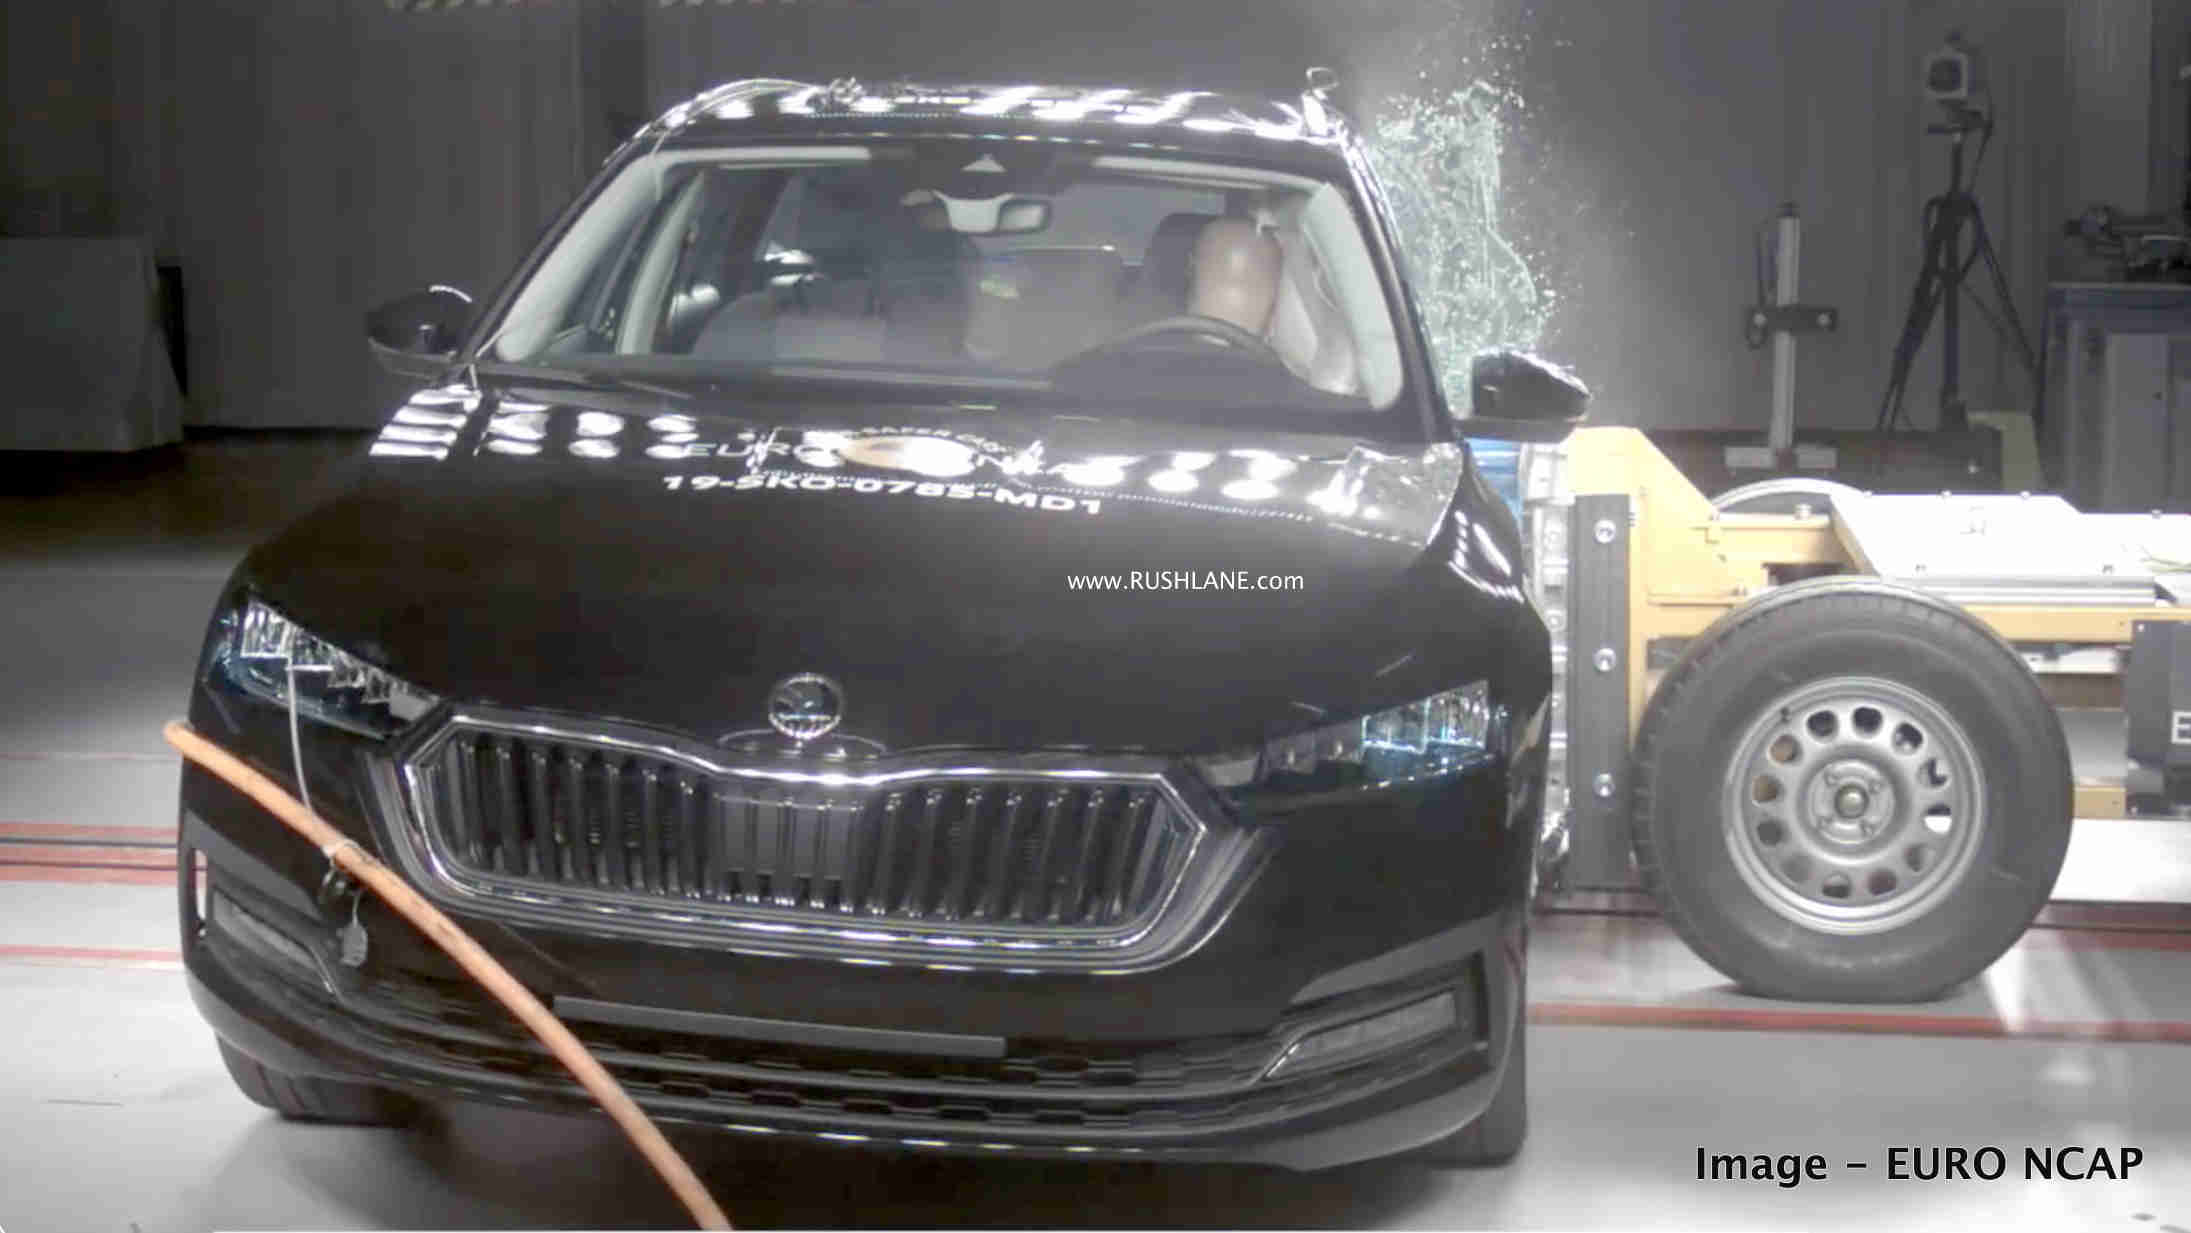 2020 Skoda Octavia crash testa